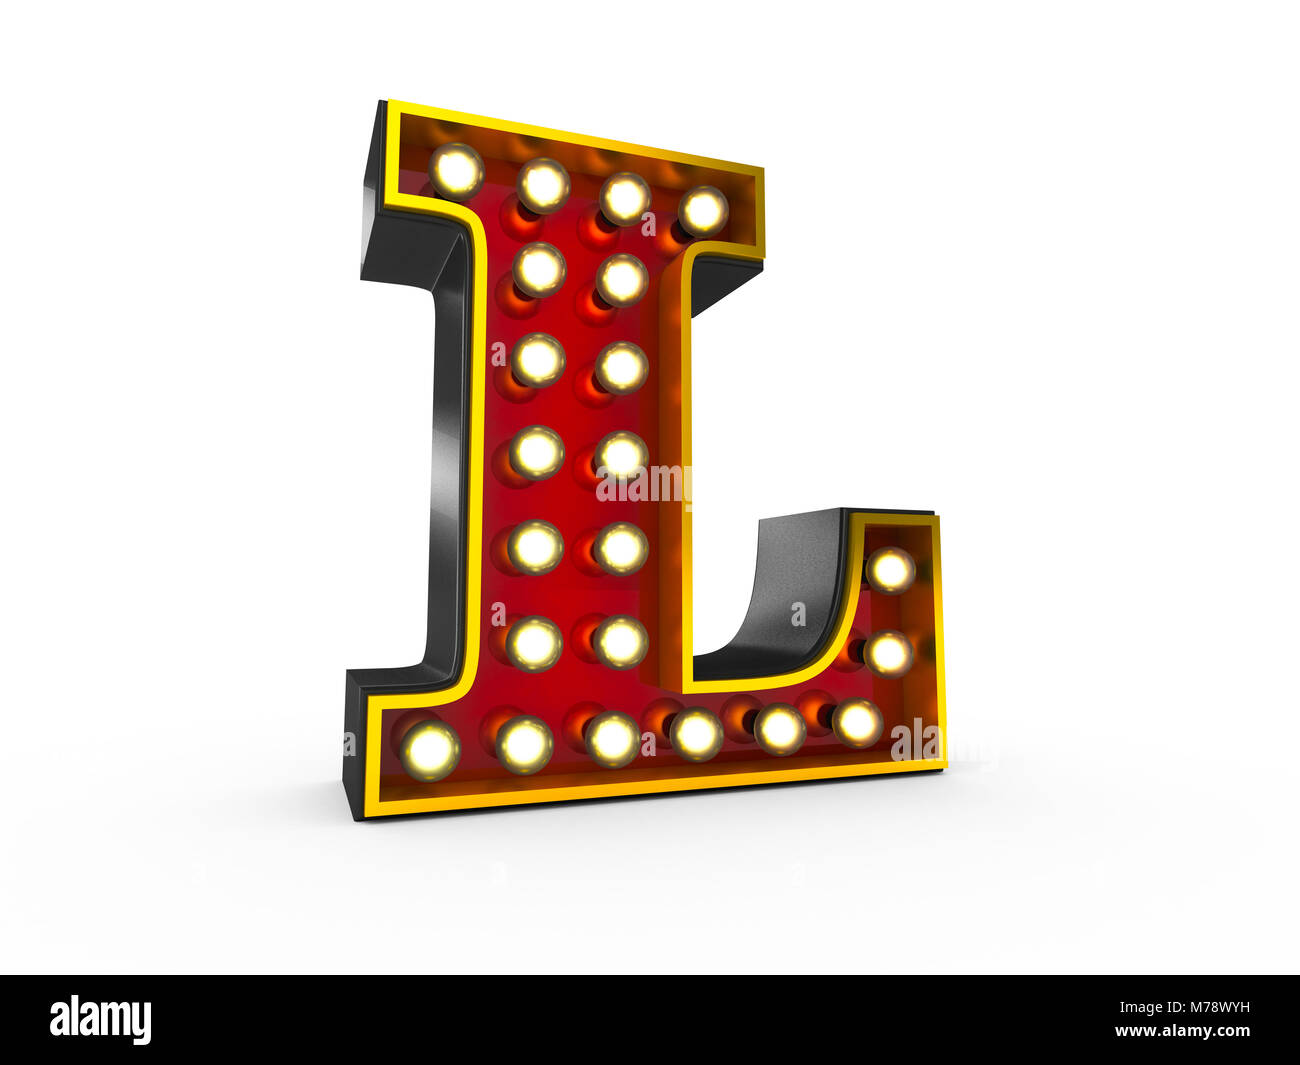 High quality 3D illustration of the letter L in Broadway style with light bulbs illuminating it over white background - Stock Image